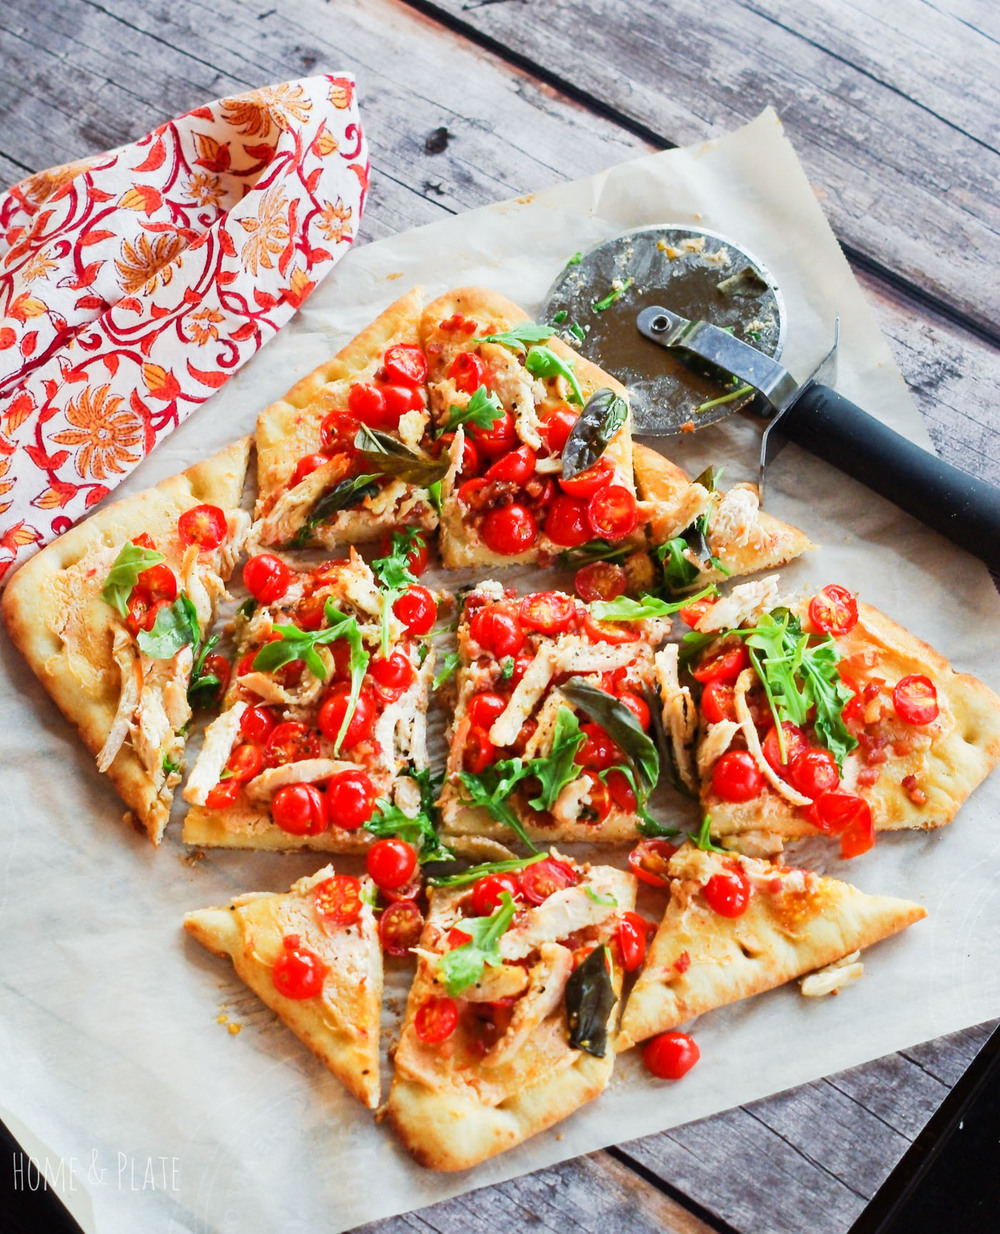 Chicken BLT Flatbread | www.homeplate.com | Enjoy summer's citrusy sweet cherry tomatoes as the highlight ingredient on this chicken BLT flatbread pizza.